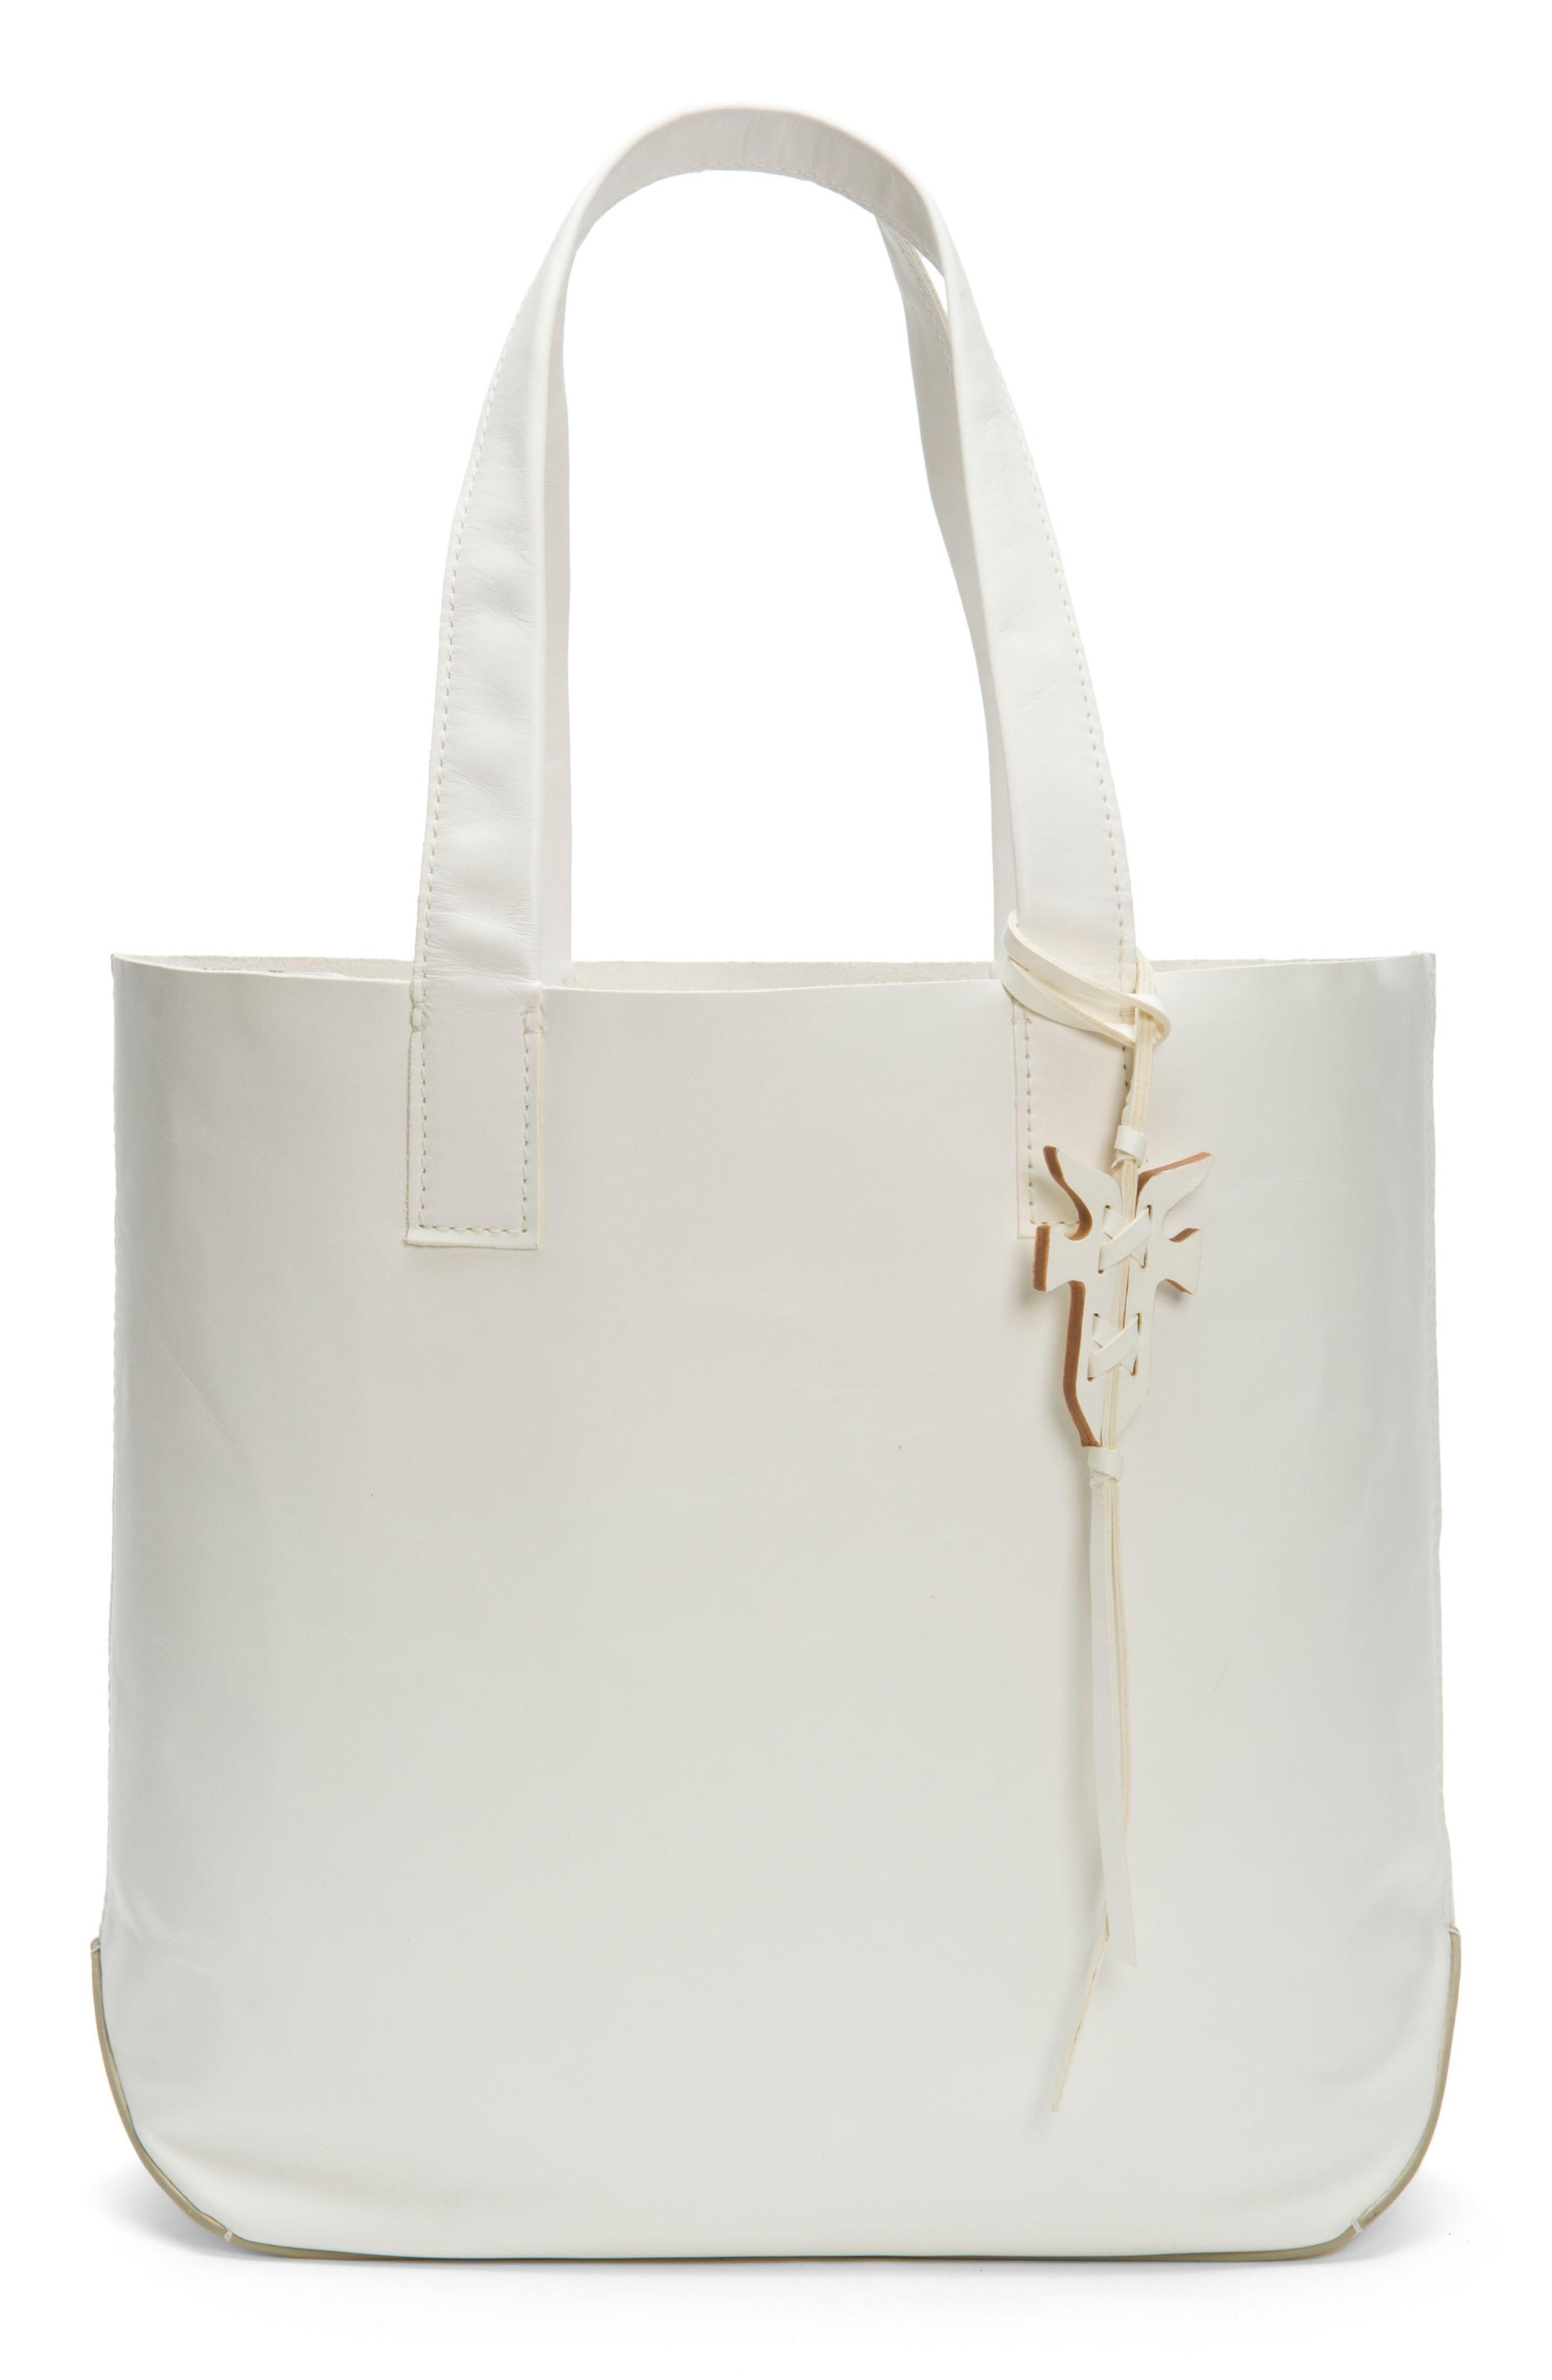 Frye Carson Leather Tote - White